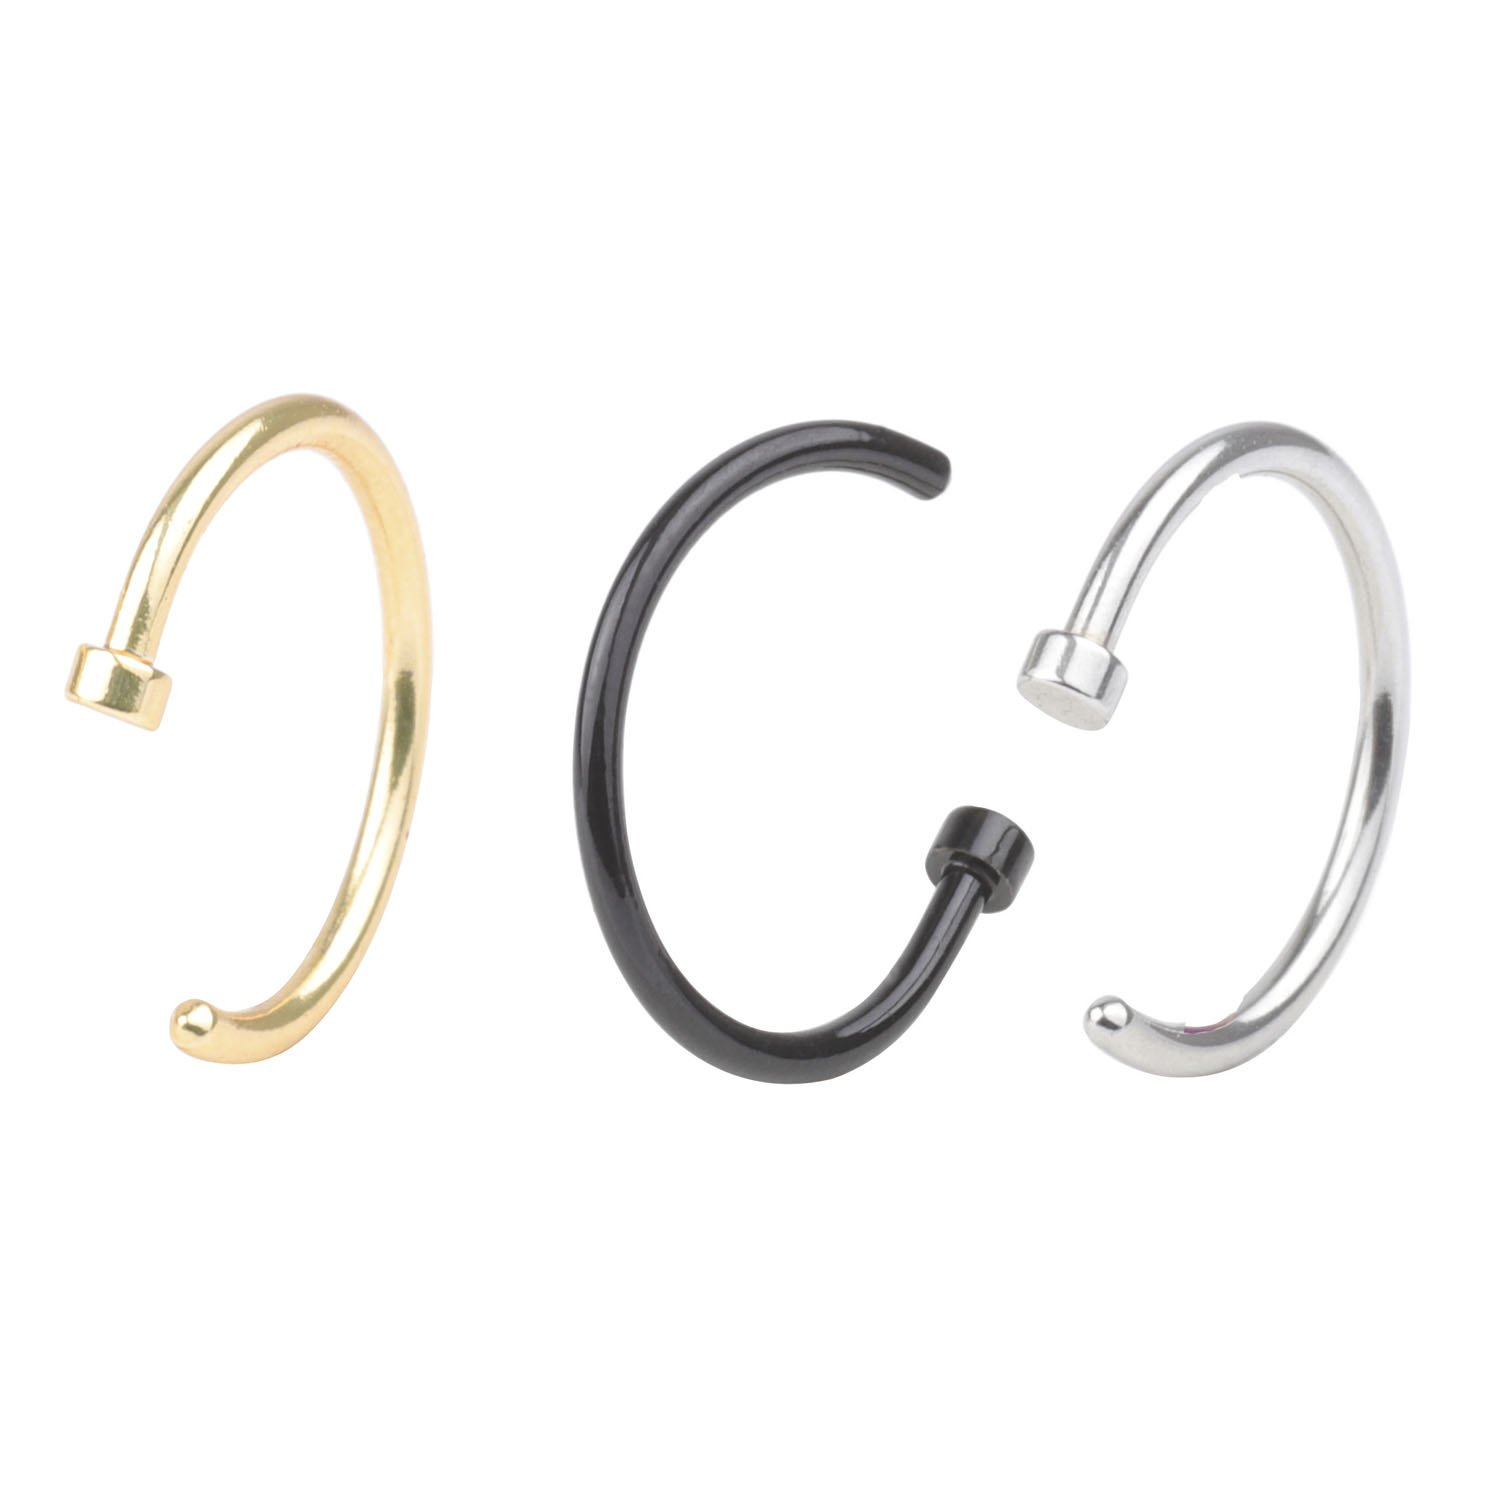 A+ CM 20G 3/8''(10mm) Stainless Steel Nose Studs Rings Unisex Body Jewelry Piercing Nose Hoop Ring Fashion Piercing Jewelry